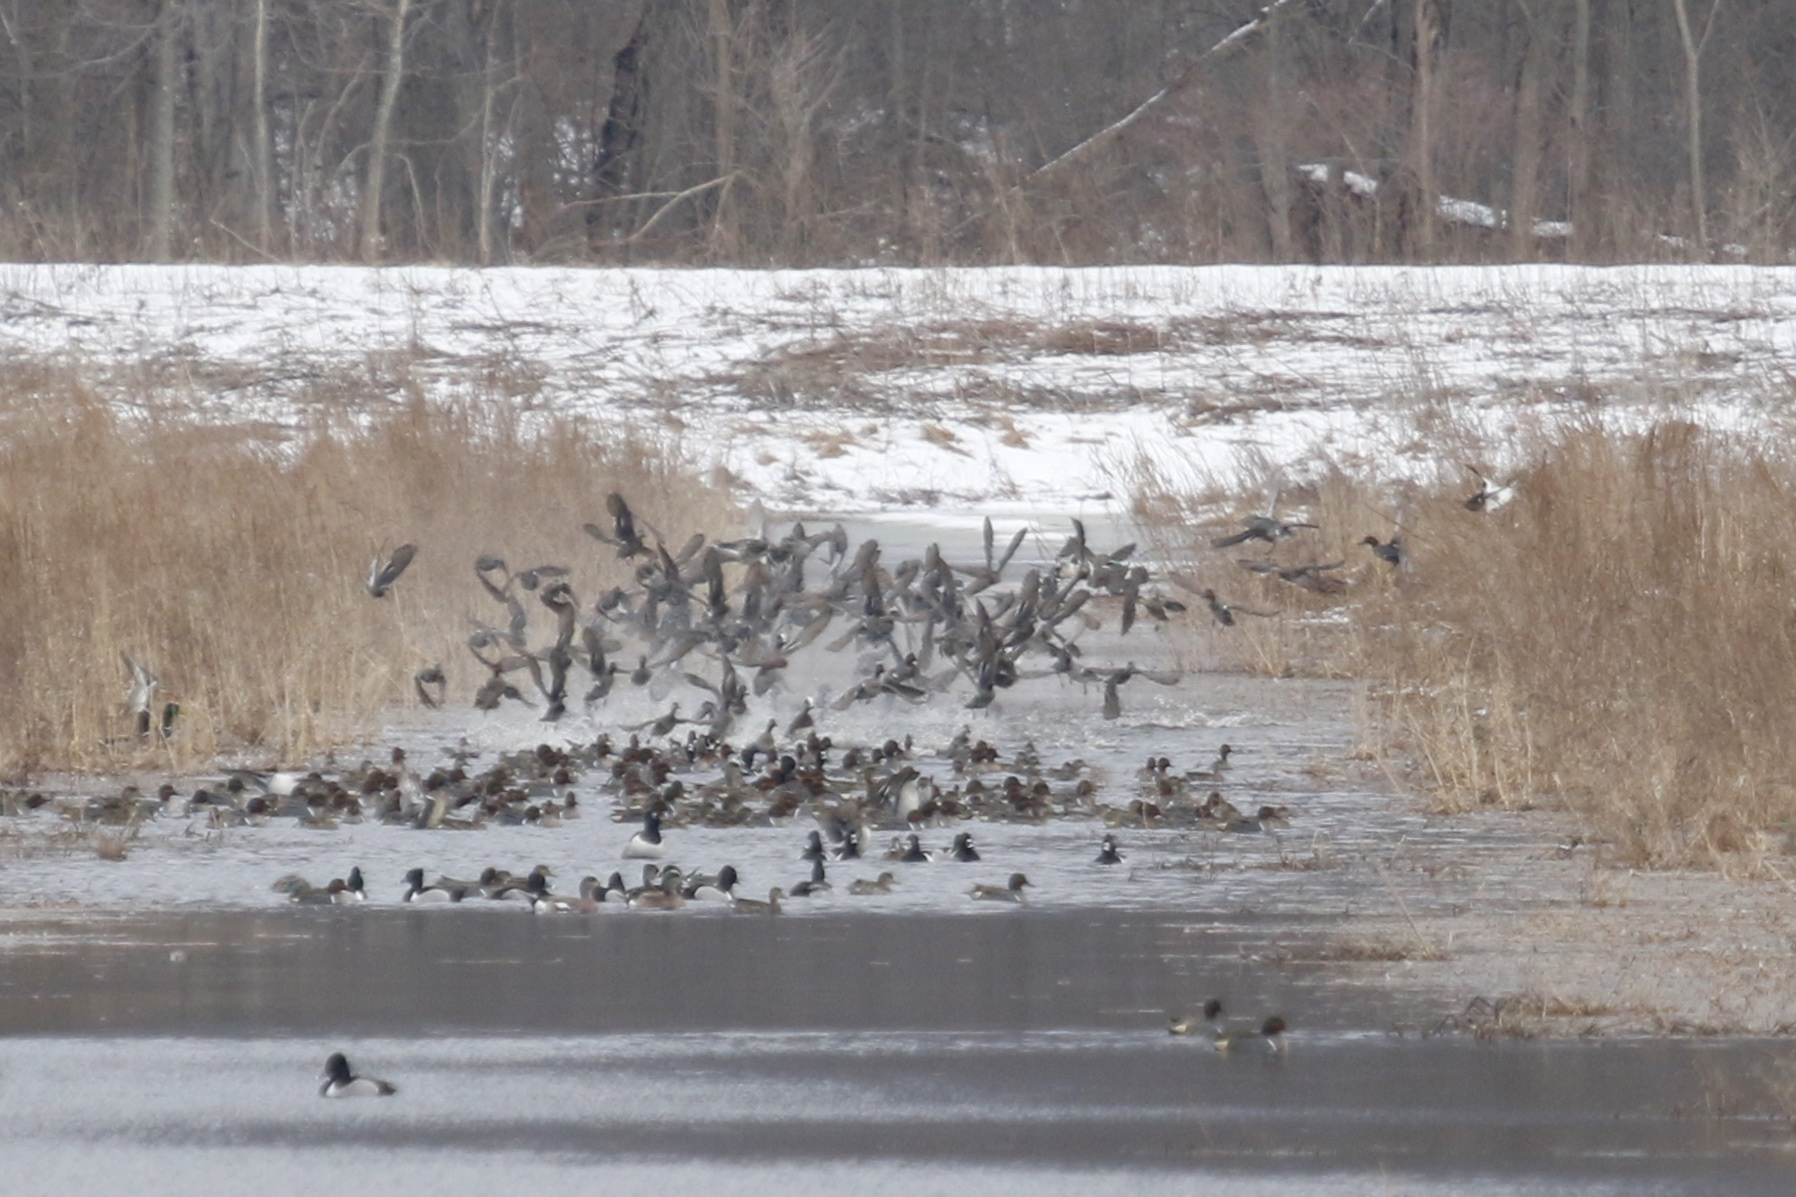 ~An explosion of ducks - Green-winged Teals and Ring-necked ducks mostly, with a few American Wigeon thrown in for good measure. Wallkill River NWR, 3/21/15.~